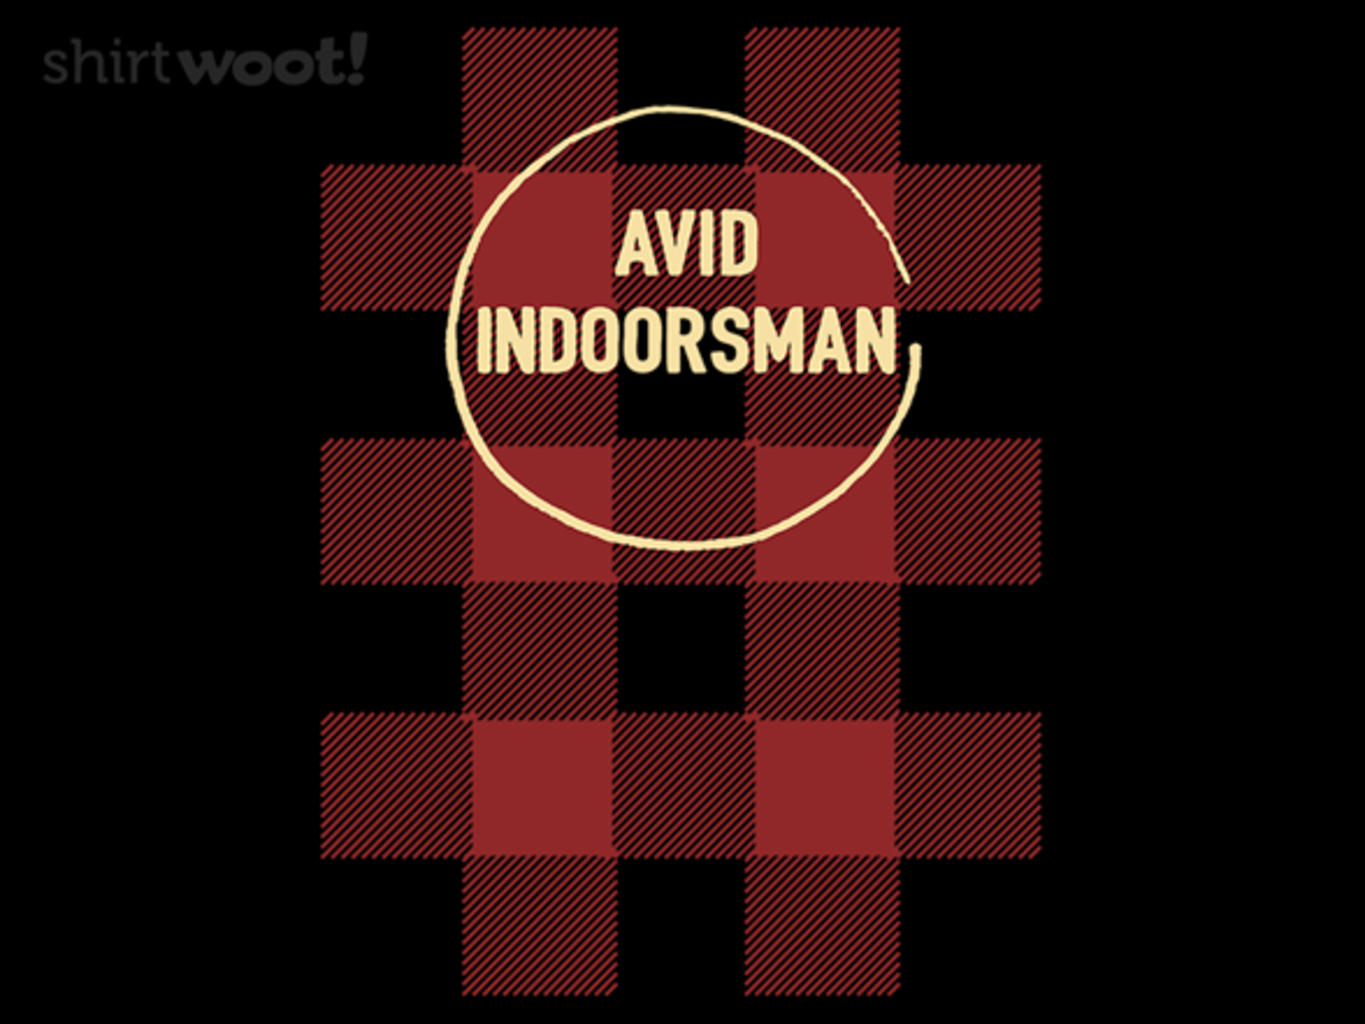 Woot!: Indoorsman